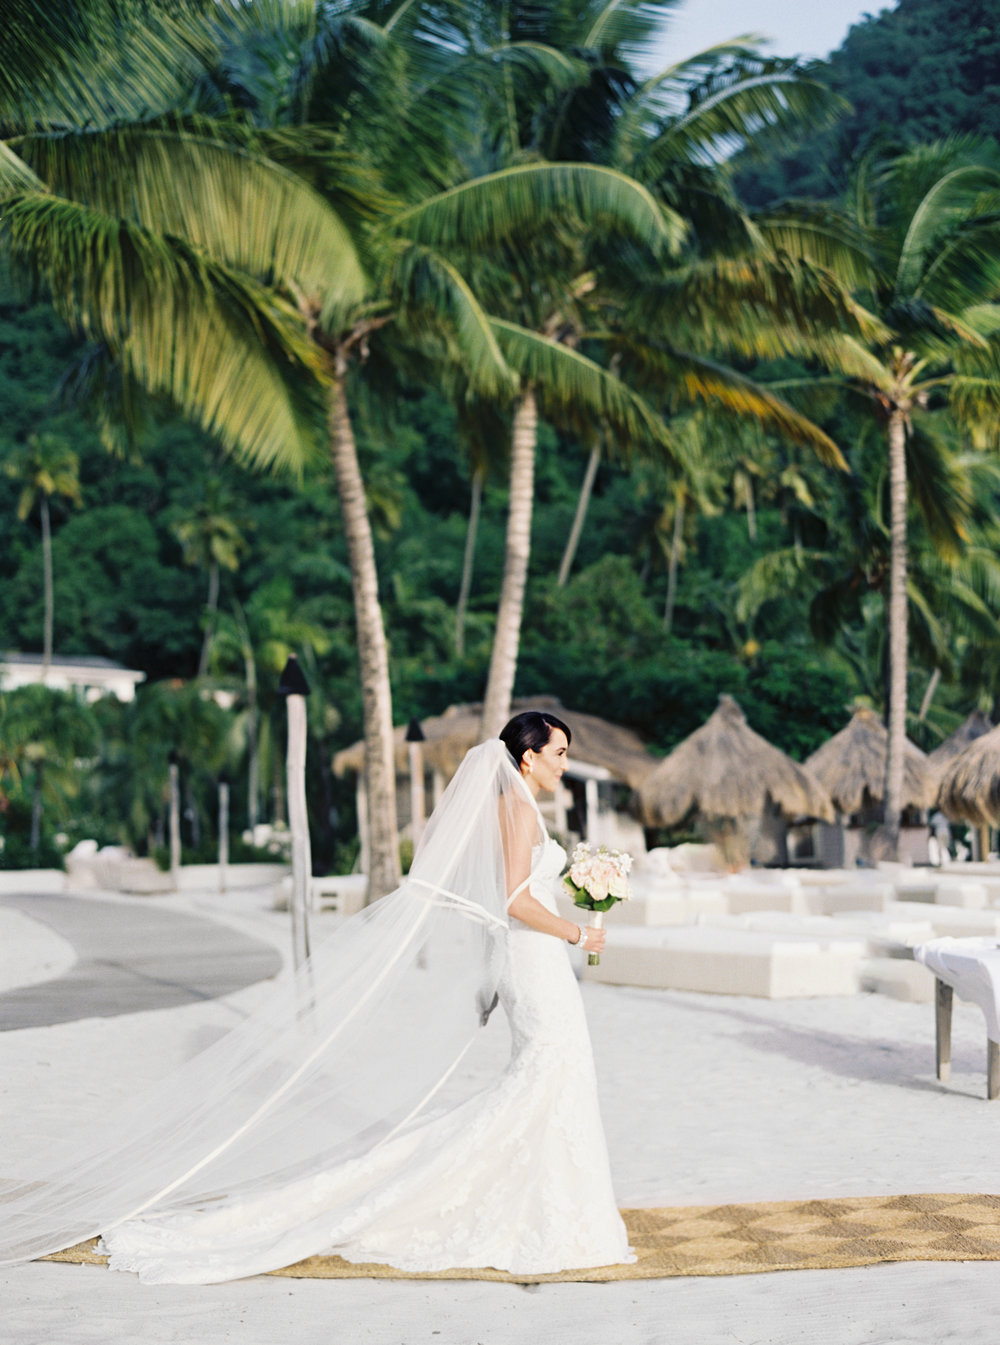 071Delmary's & Daniel : ELOPEMENT : ST. LUCIA : CARIBBEAN : PHOTO & VIDEO : DESTINATION : OUTLIVE CREATIVE : 2016 .jpg